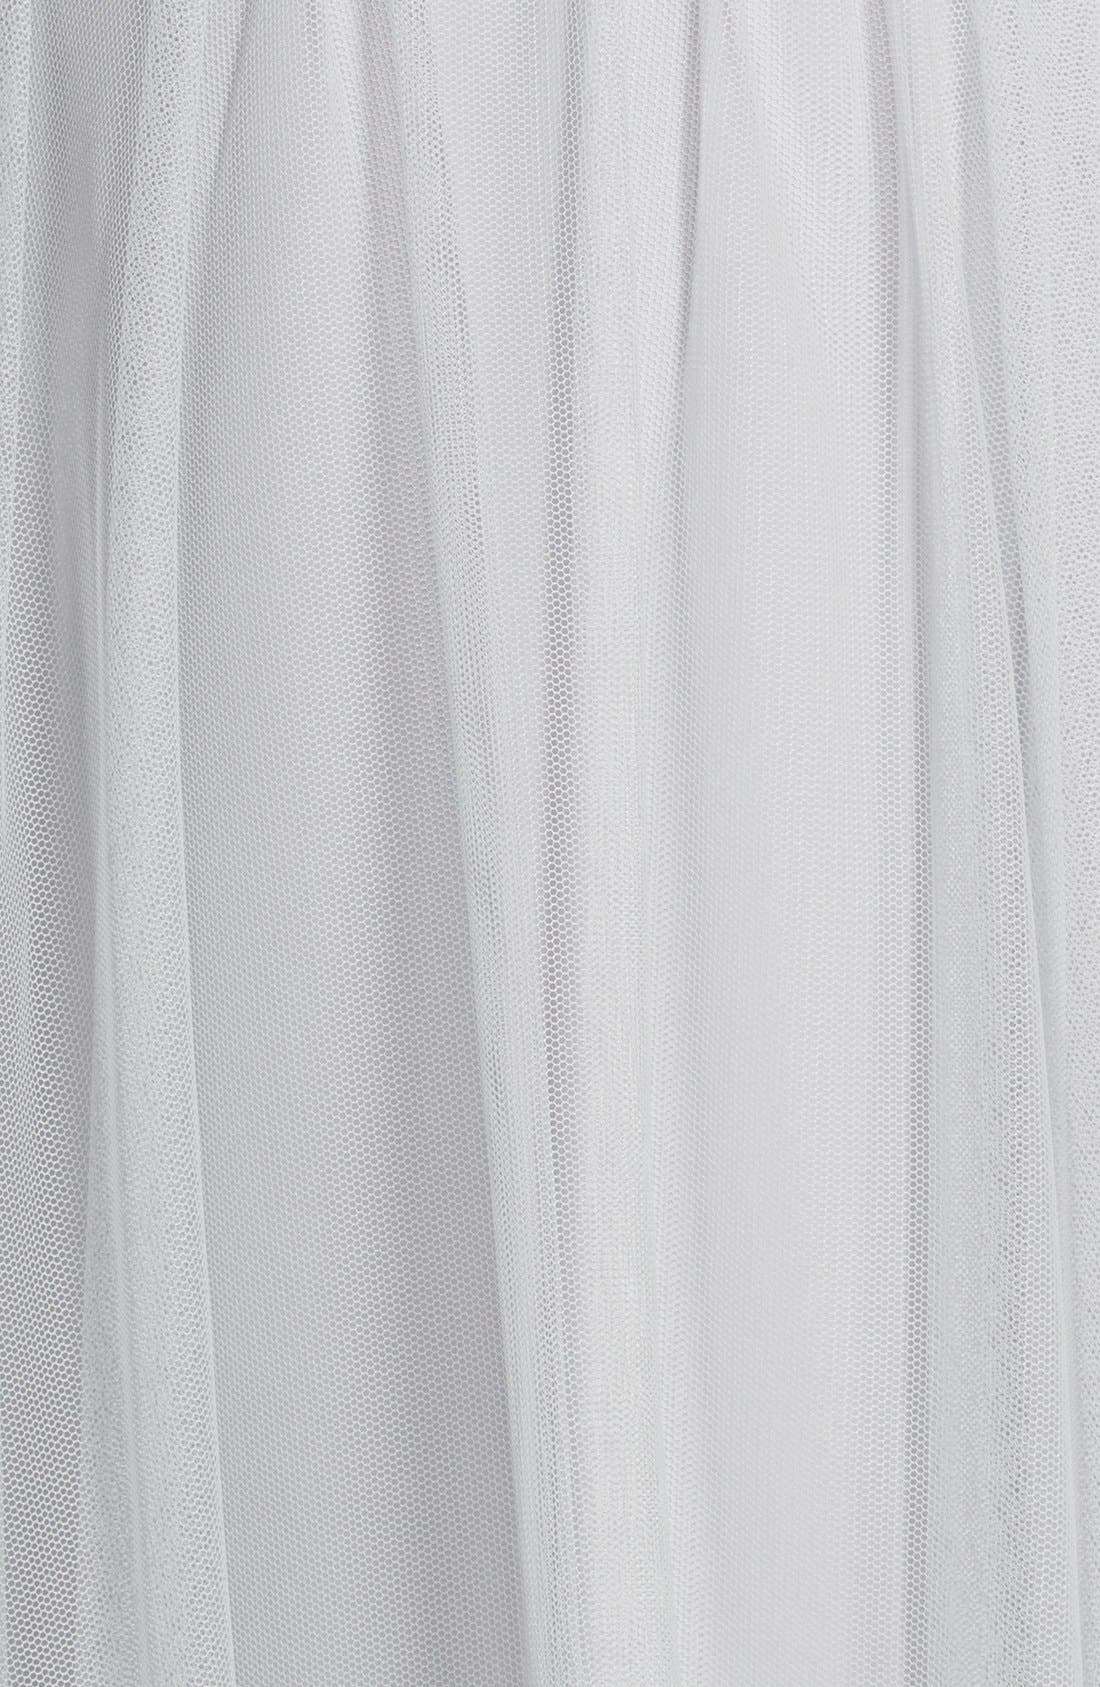 Lace & Tulle Spaghetti Strap Gown,                             Alternate thumbnail 3, color,                             020